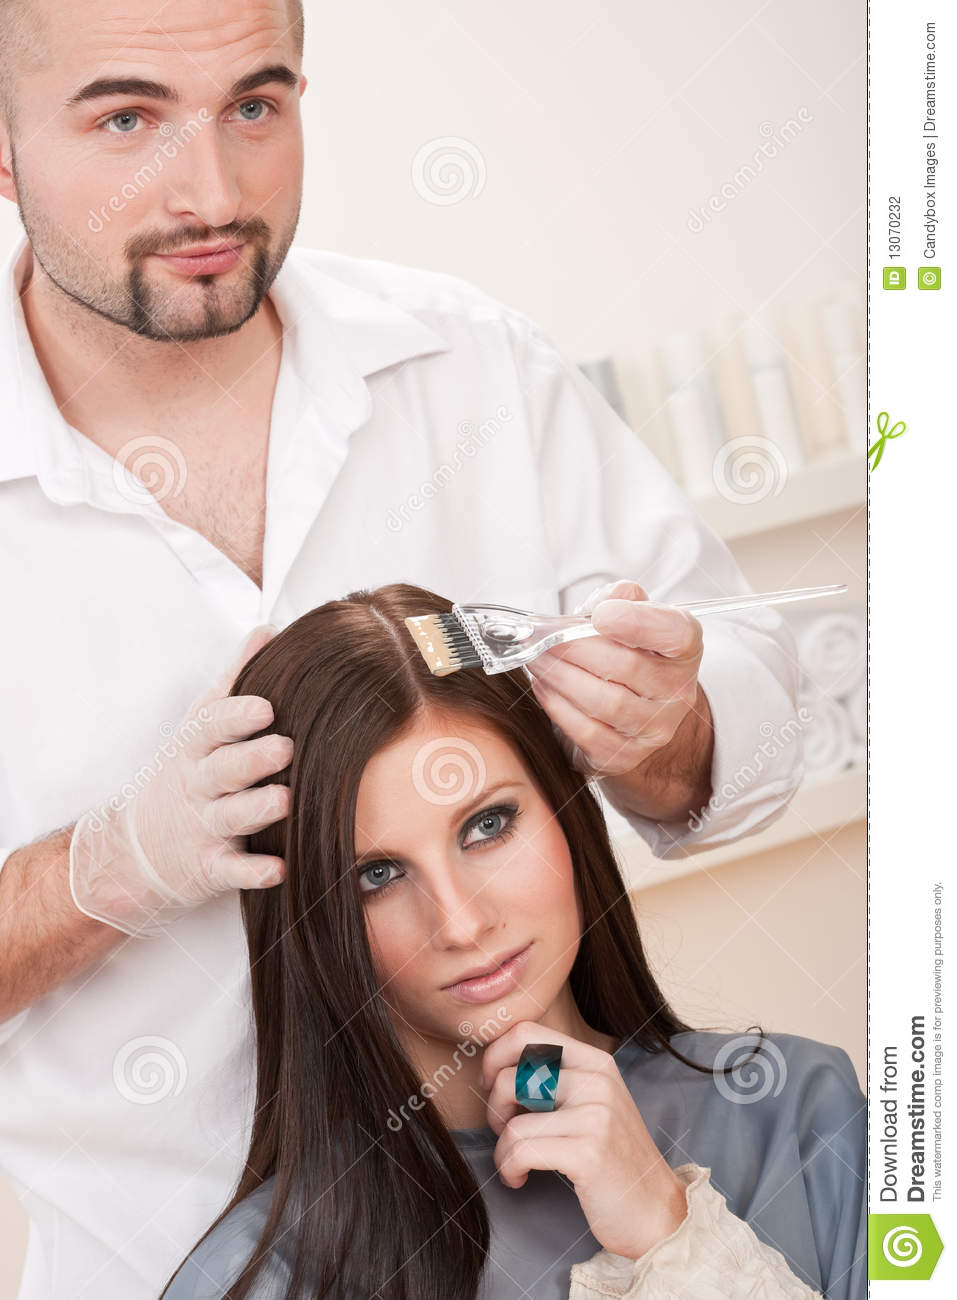 Professional Hairdresser : Professional Hairdresser Color Customer At Salon Stock Photography ...